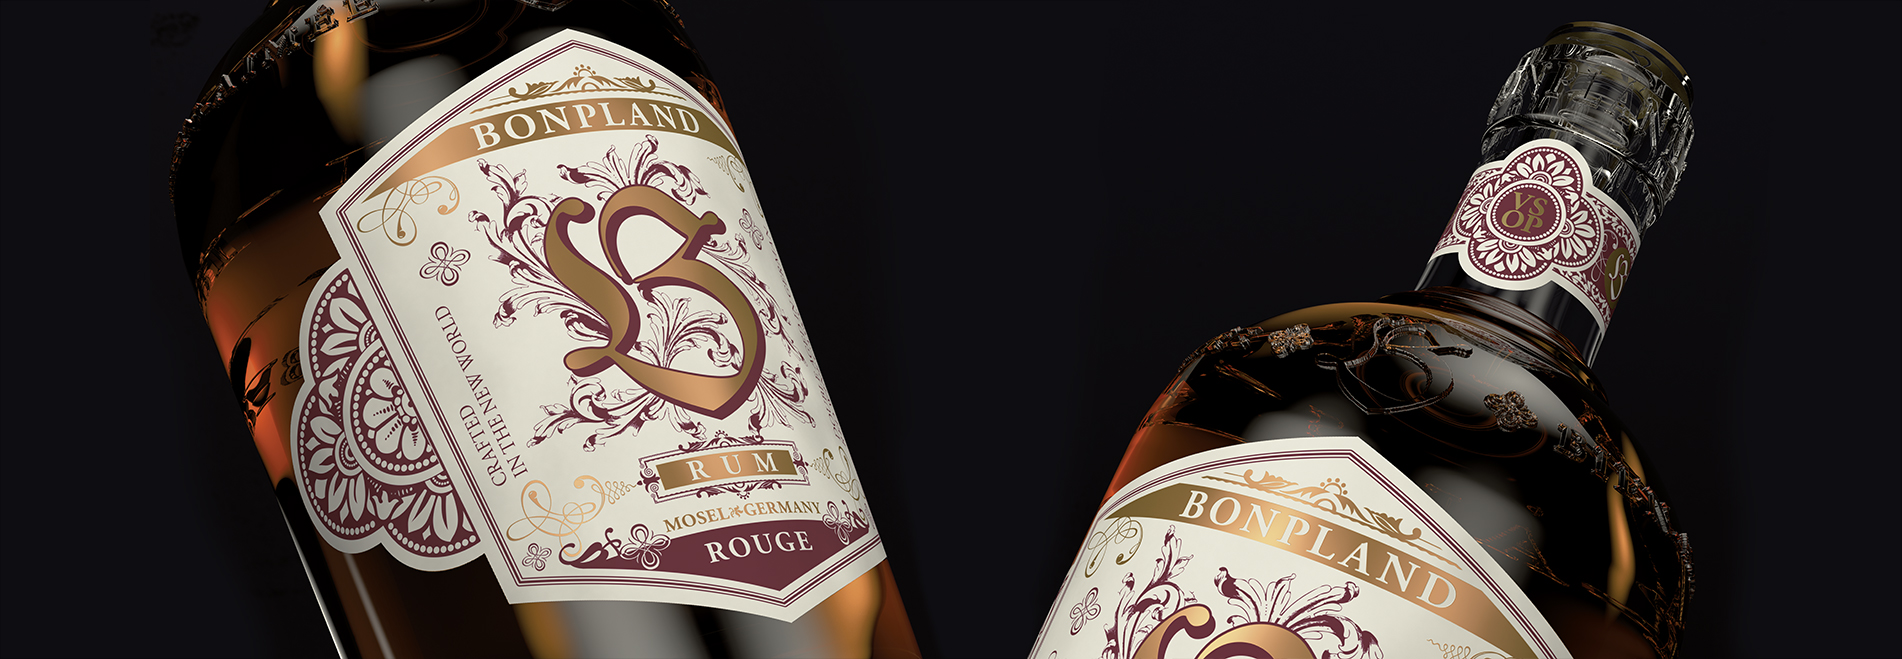 Two details shots of the Bonpland Rum Rouge bottle